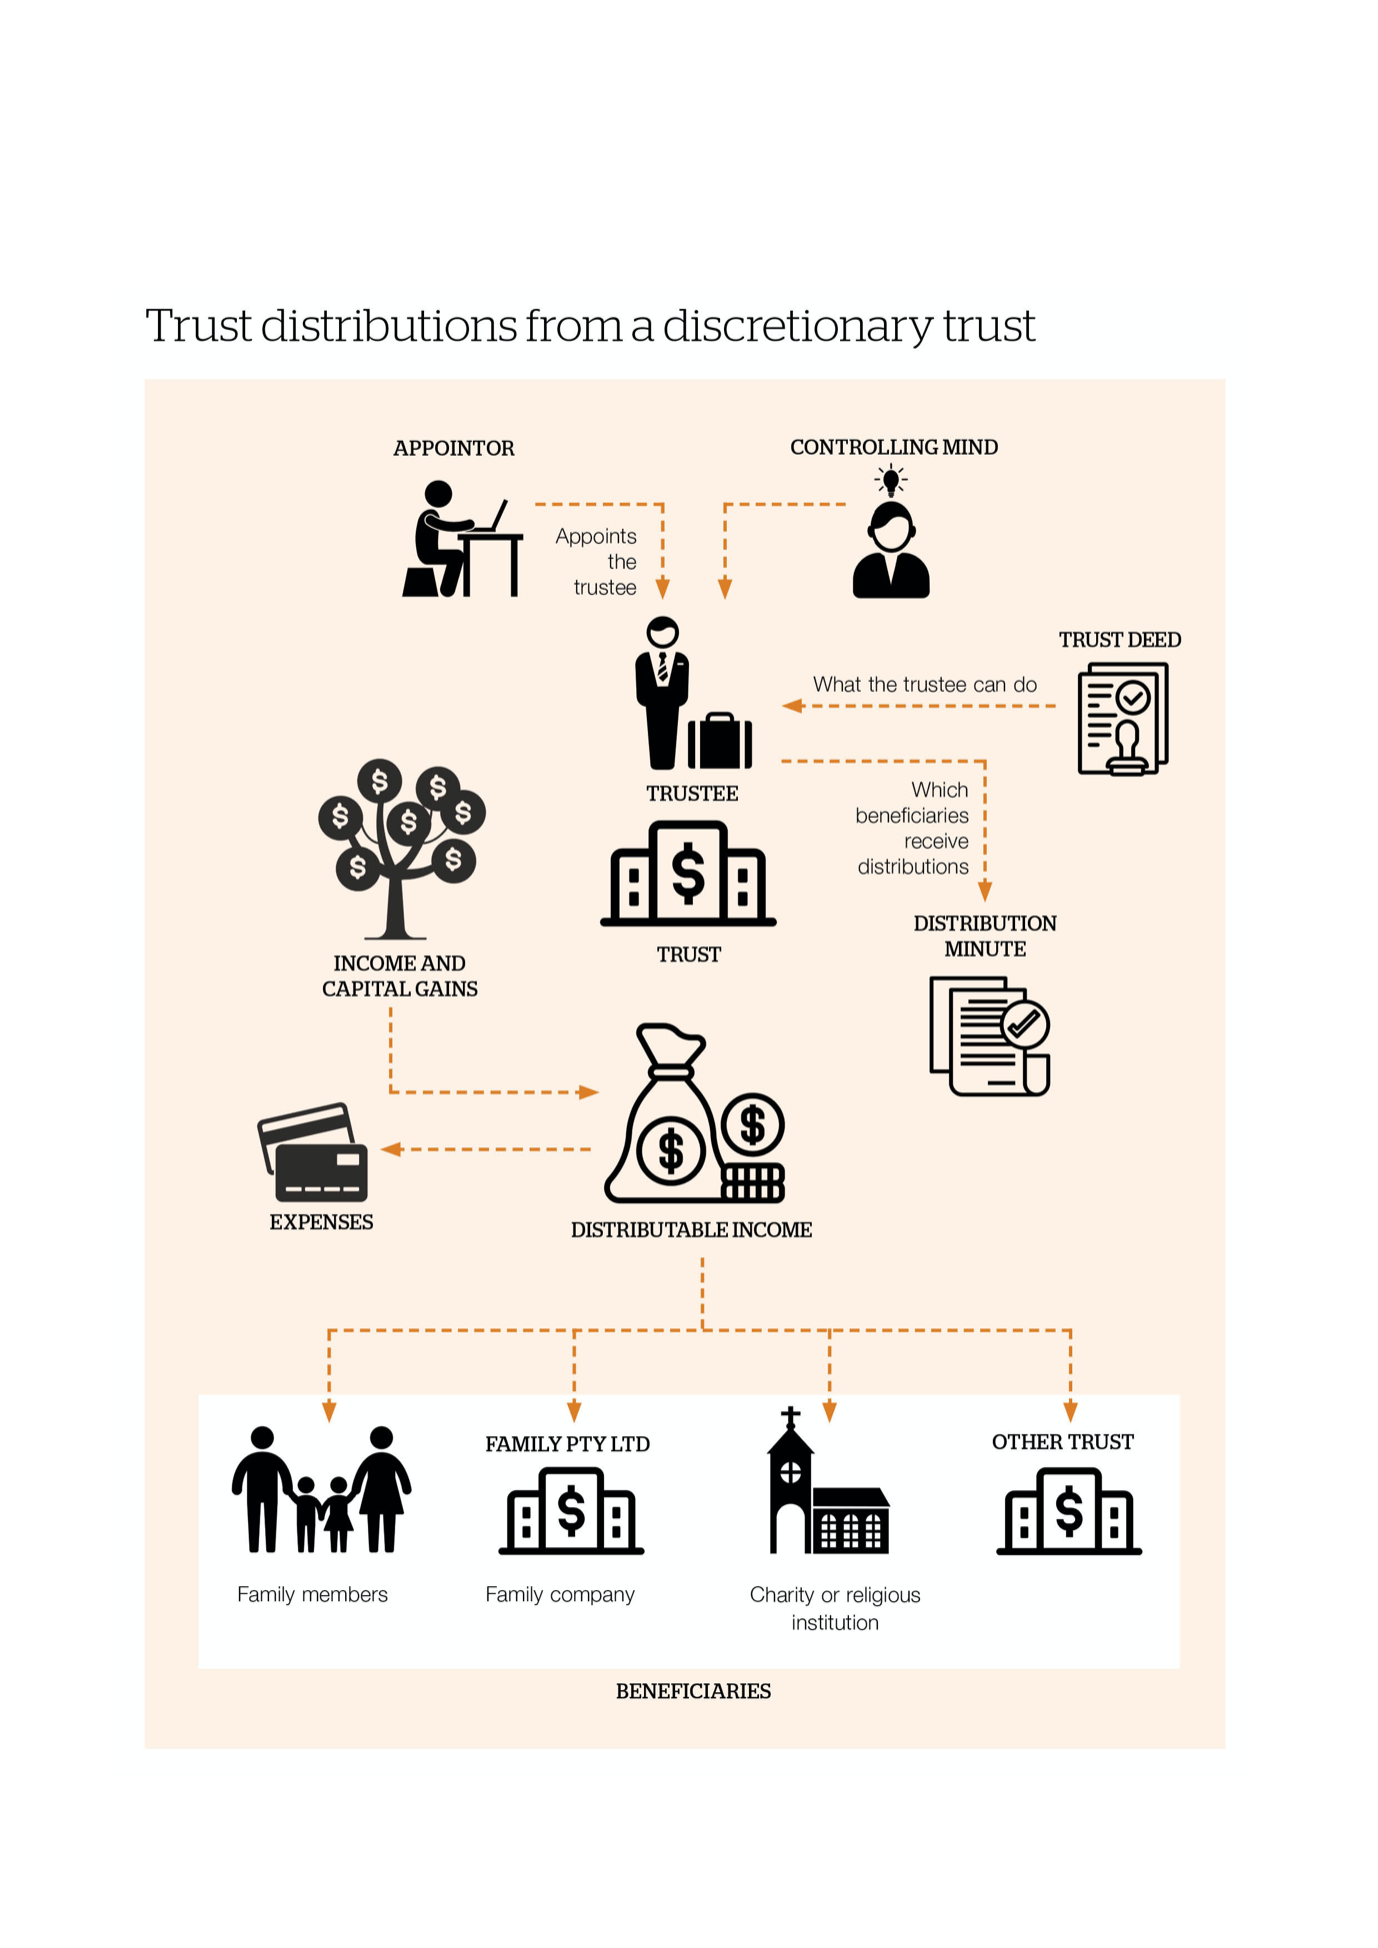 trust distributions from a discretionary trust